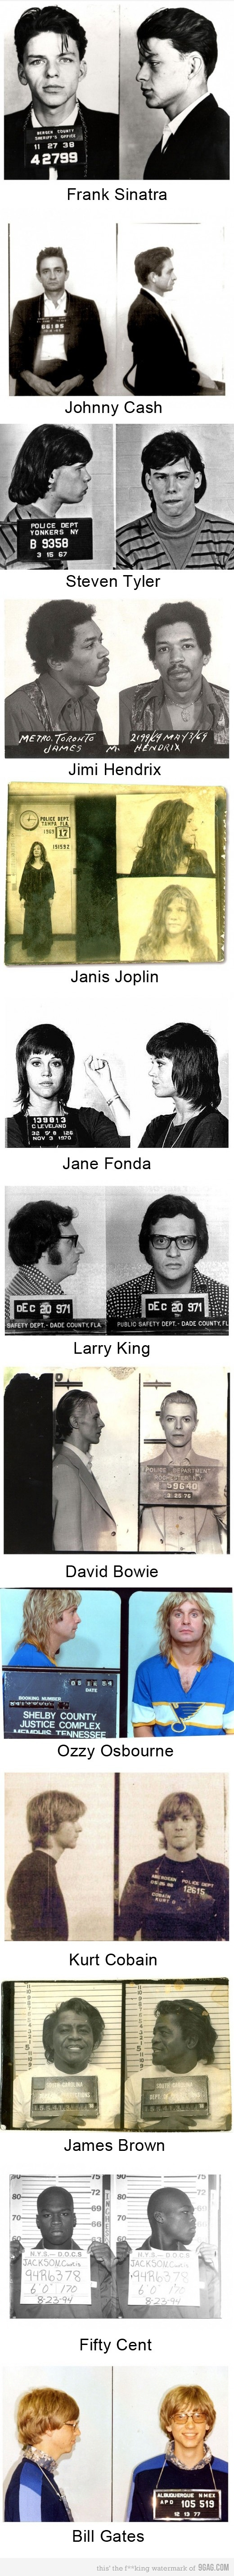 Famous people's prison photos - and the last one surprised me.